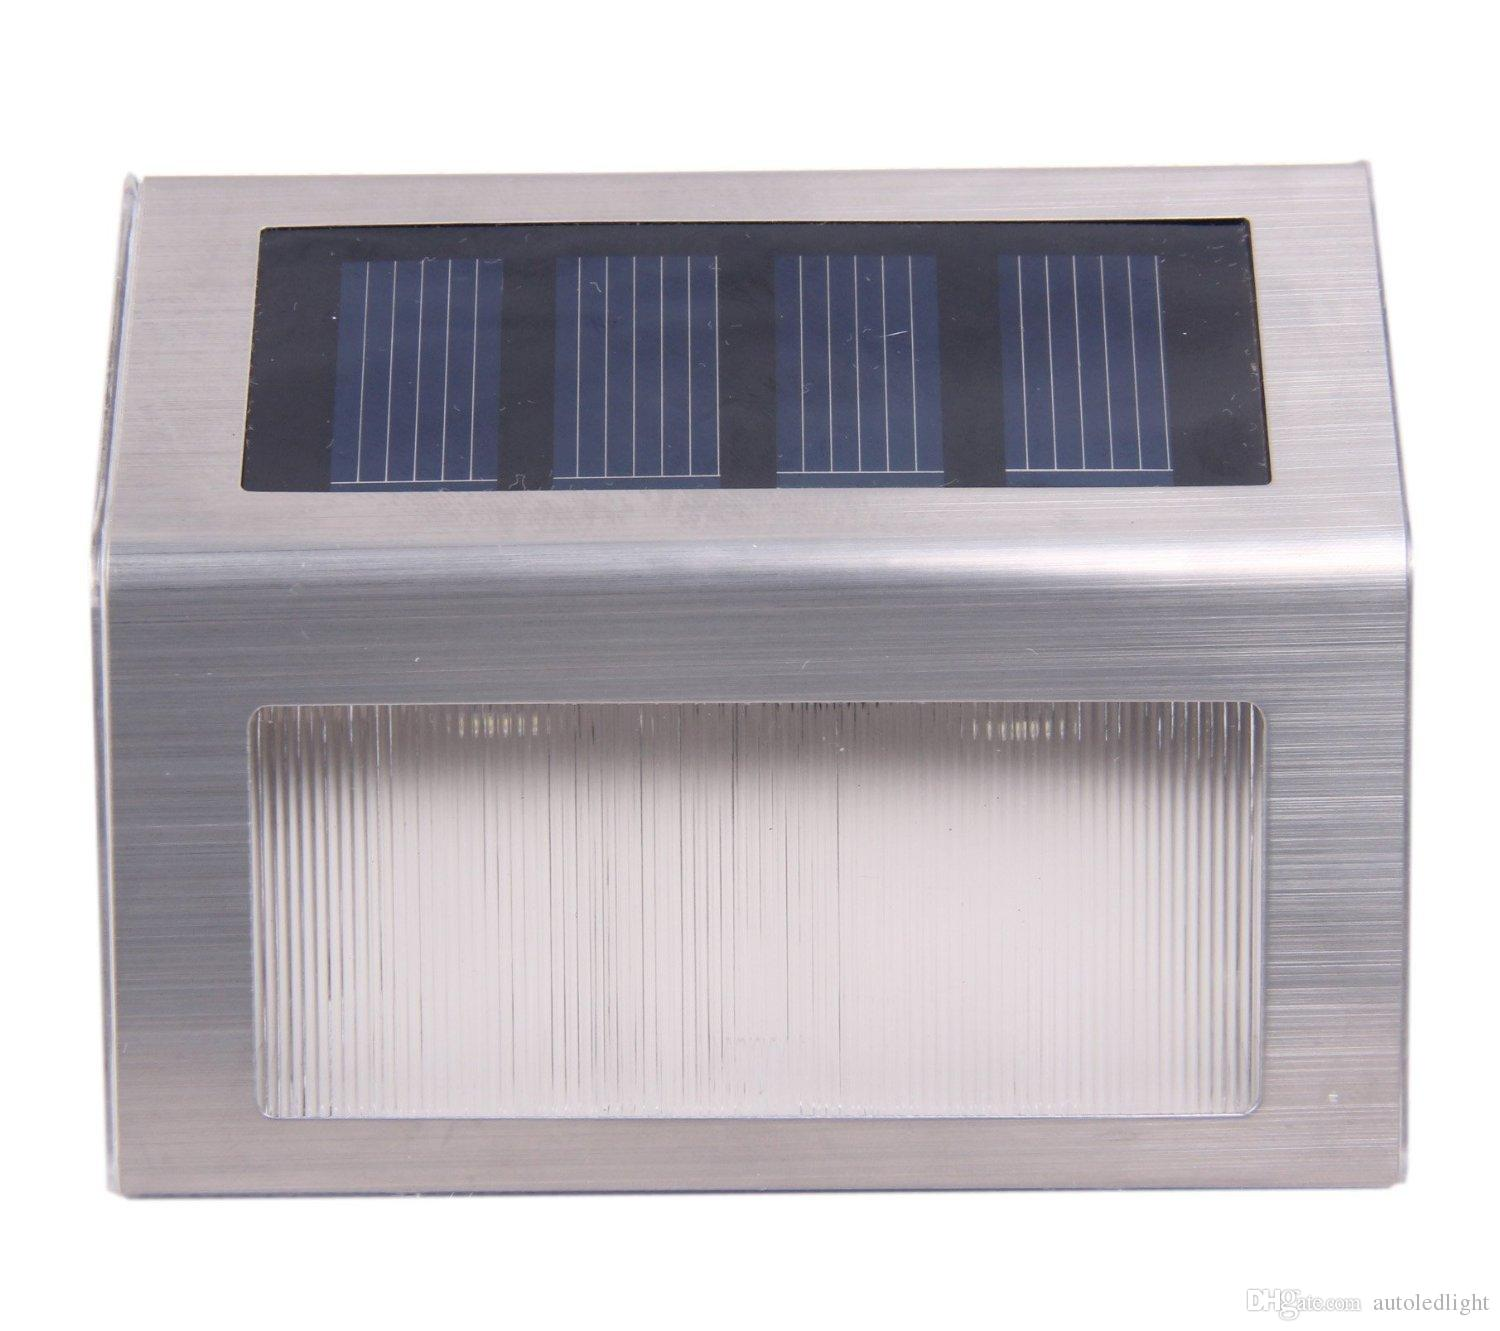 Outdoor Wall Lamps Stair Lights Outdoor LED Step Lighting 2 LEDs Stainless Steel For Steps Paths Patio Decks Solar Wall Lamps Solar Lights